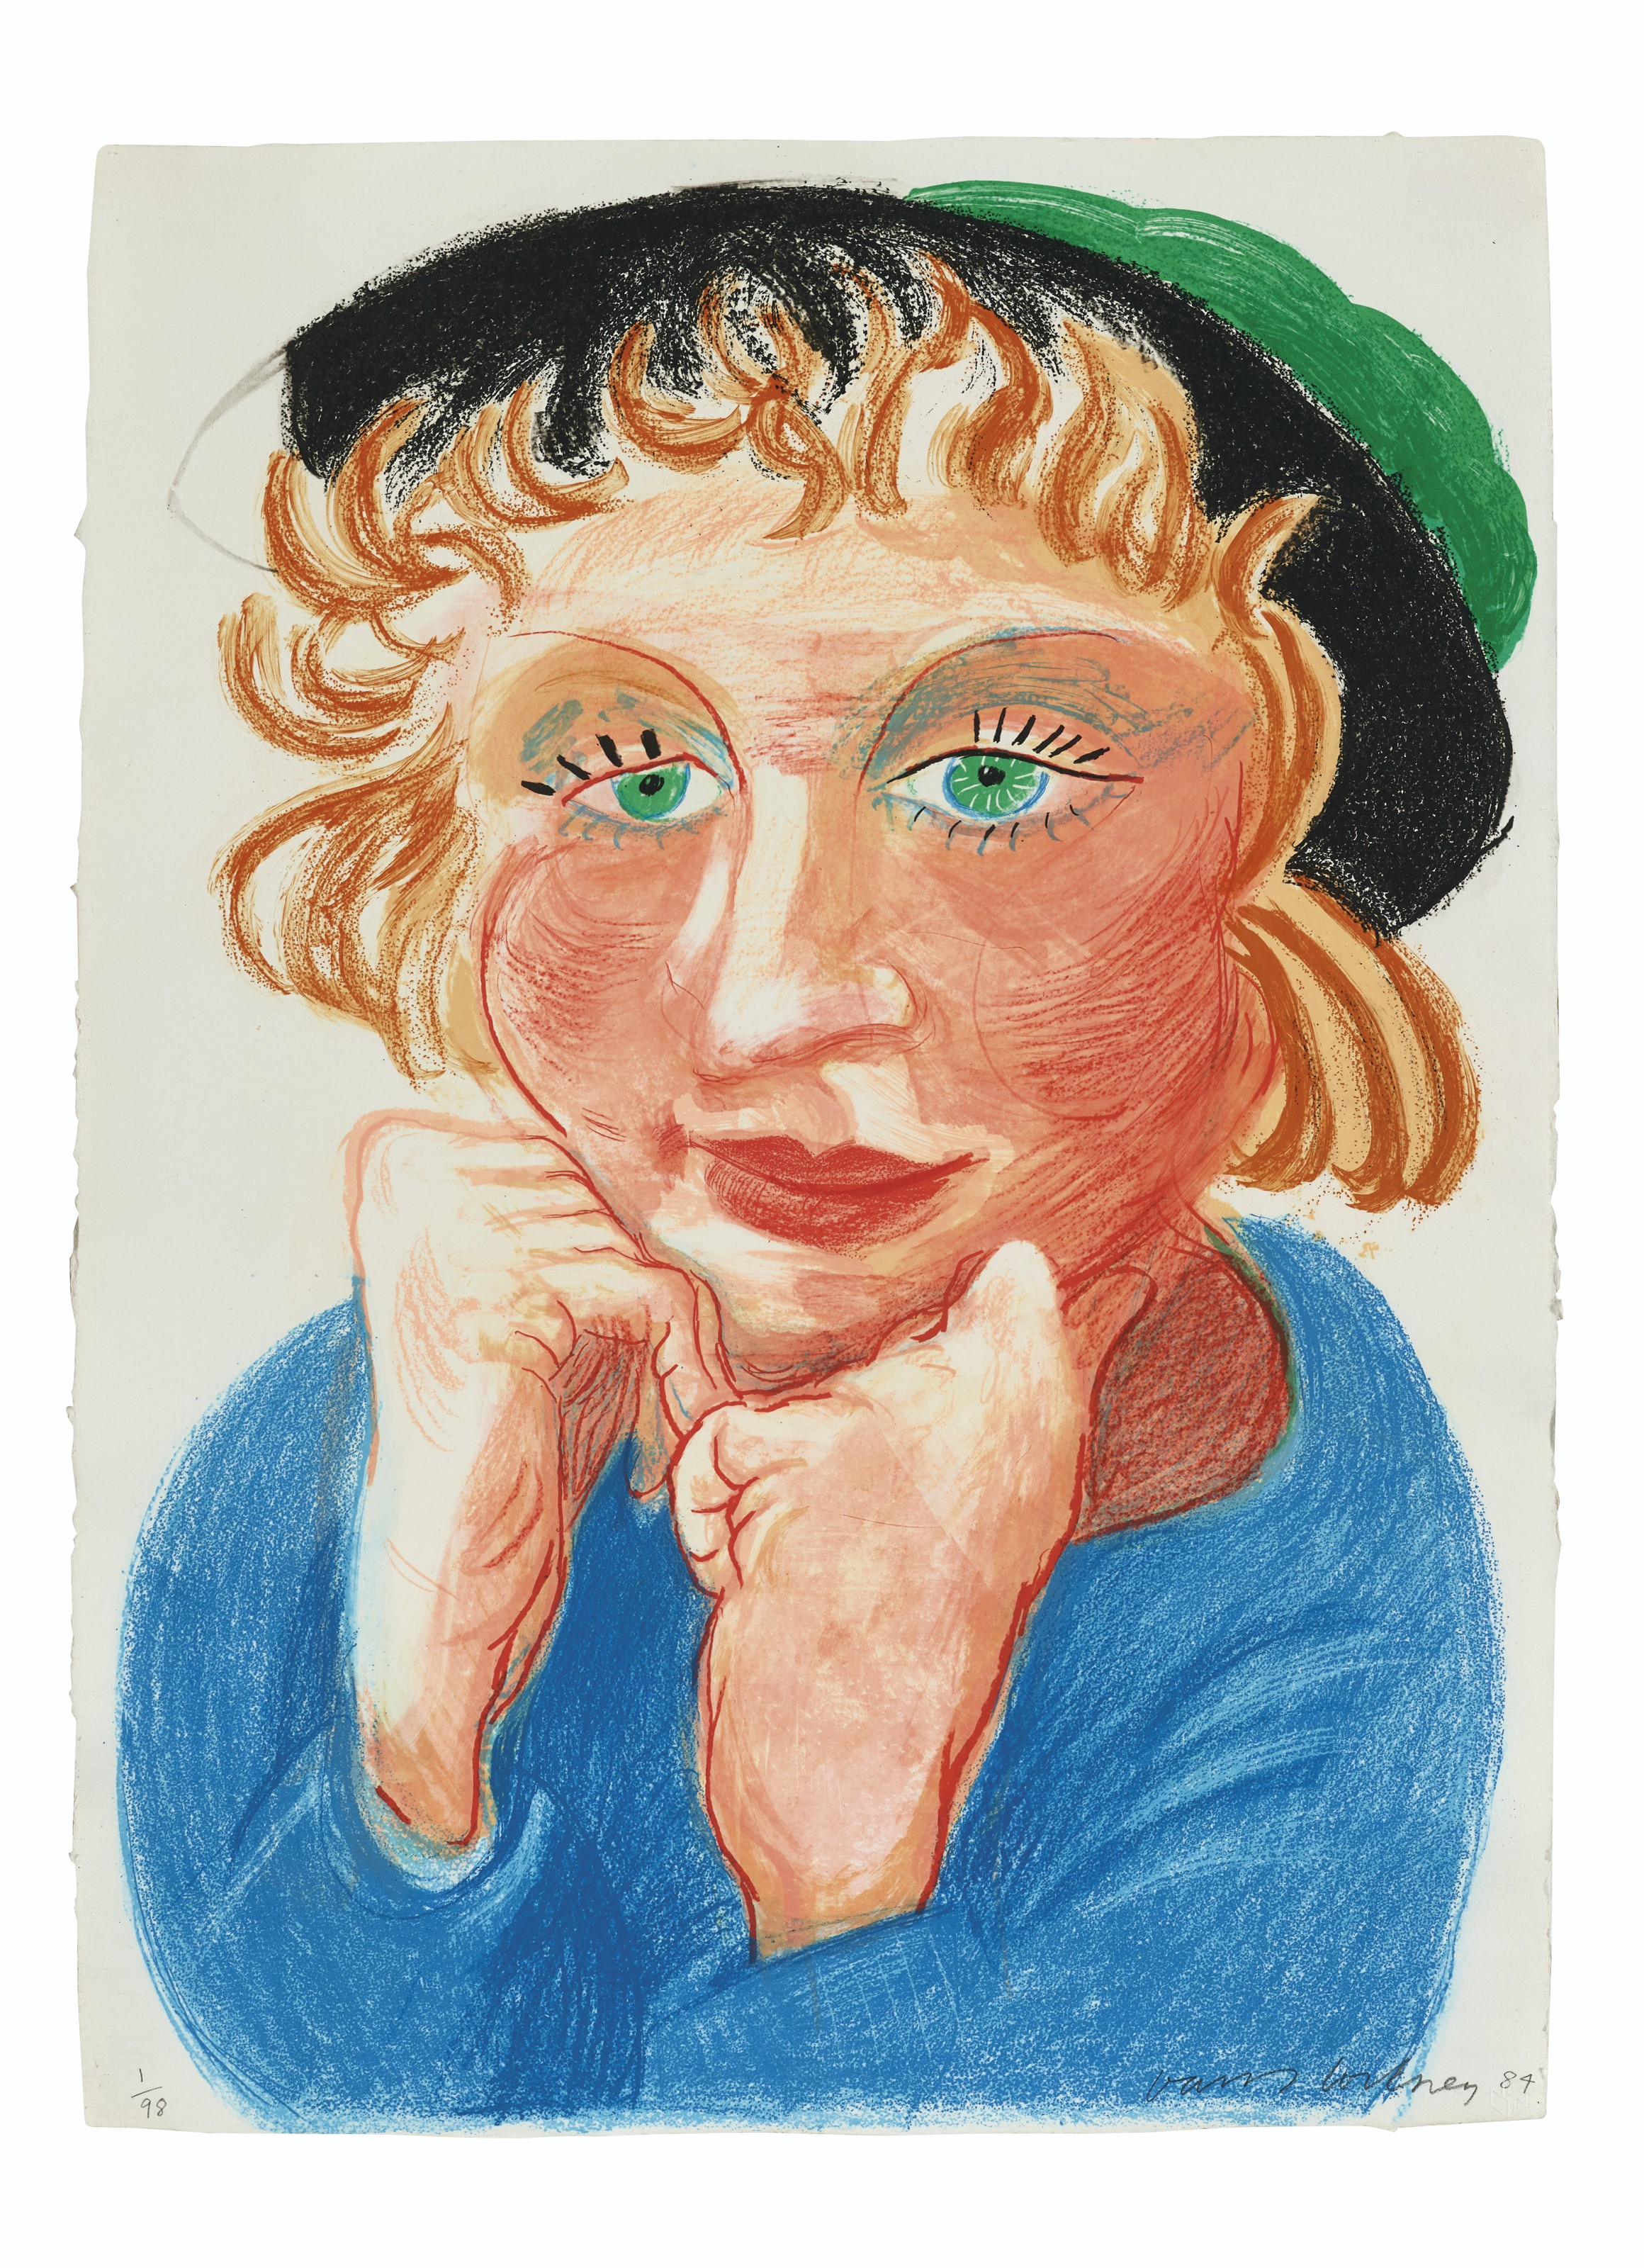 David Hockney (b. 1937), Celia with Green Hat, 1985. Lithograph in colours on HMP handmade paper, signed and dated in pencil, numbered 198. Image & sheet 29 x 19⅔ in (76 x 50 cm). Estimate £12,000-18,000. Offered in Prints & Multiples on 18 March 2020 at Christie's in London